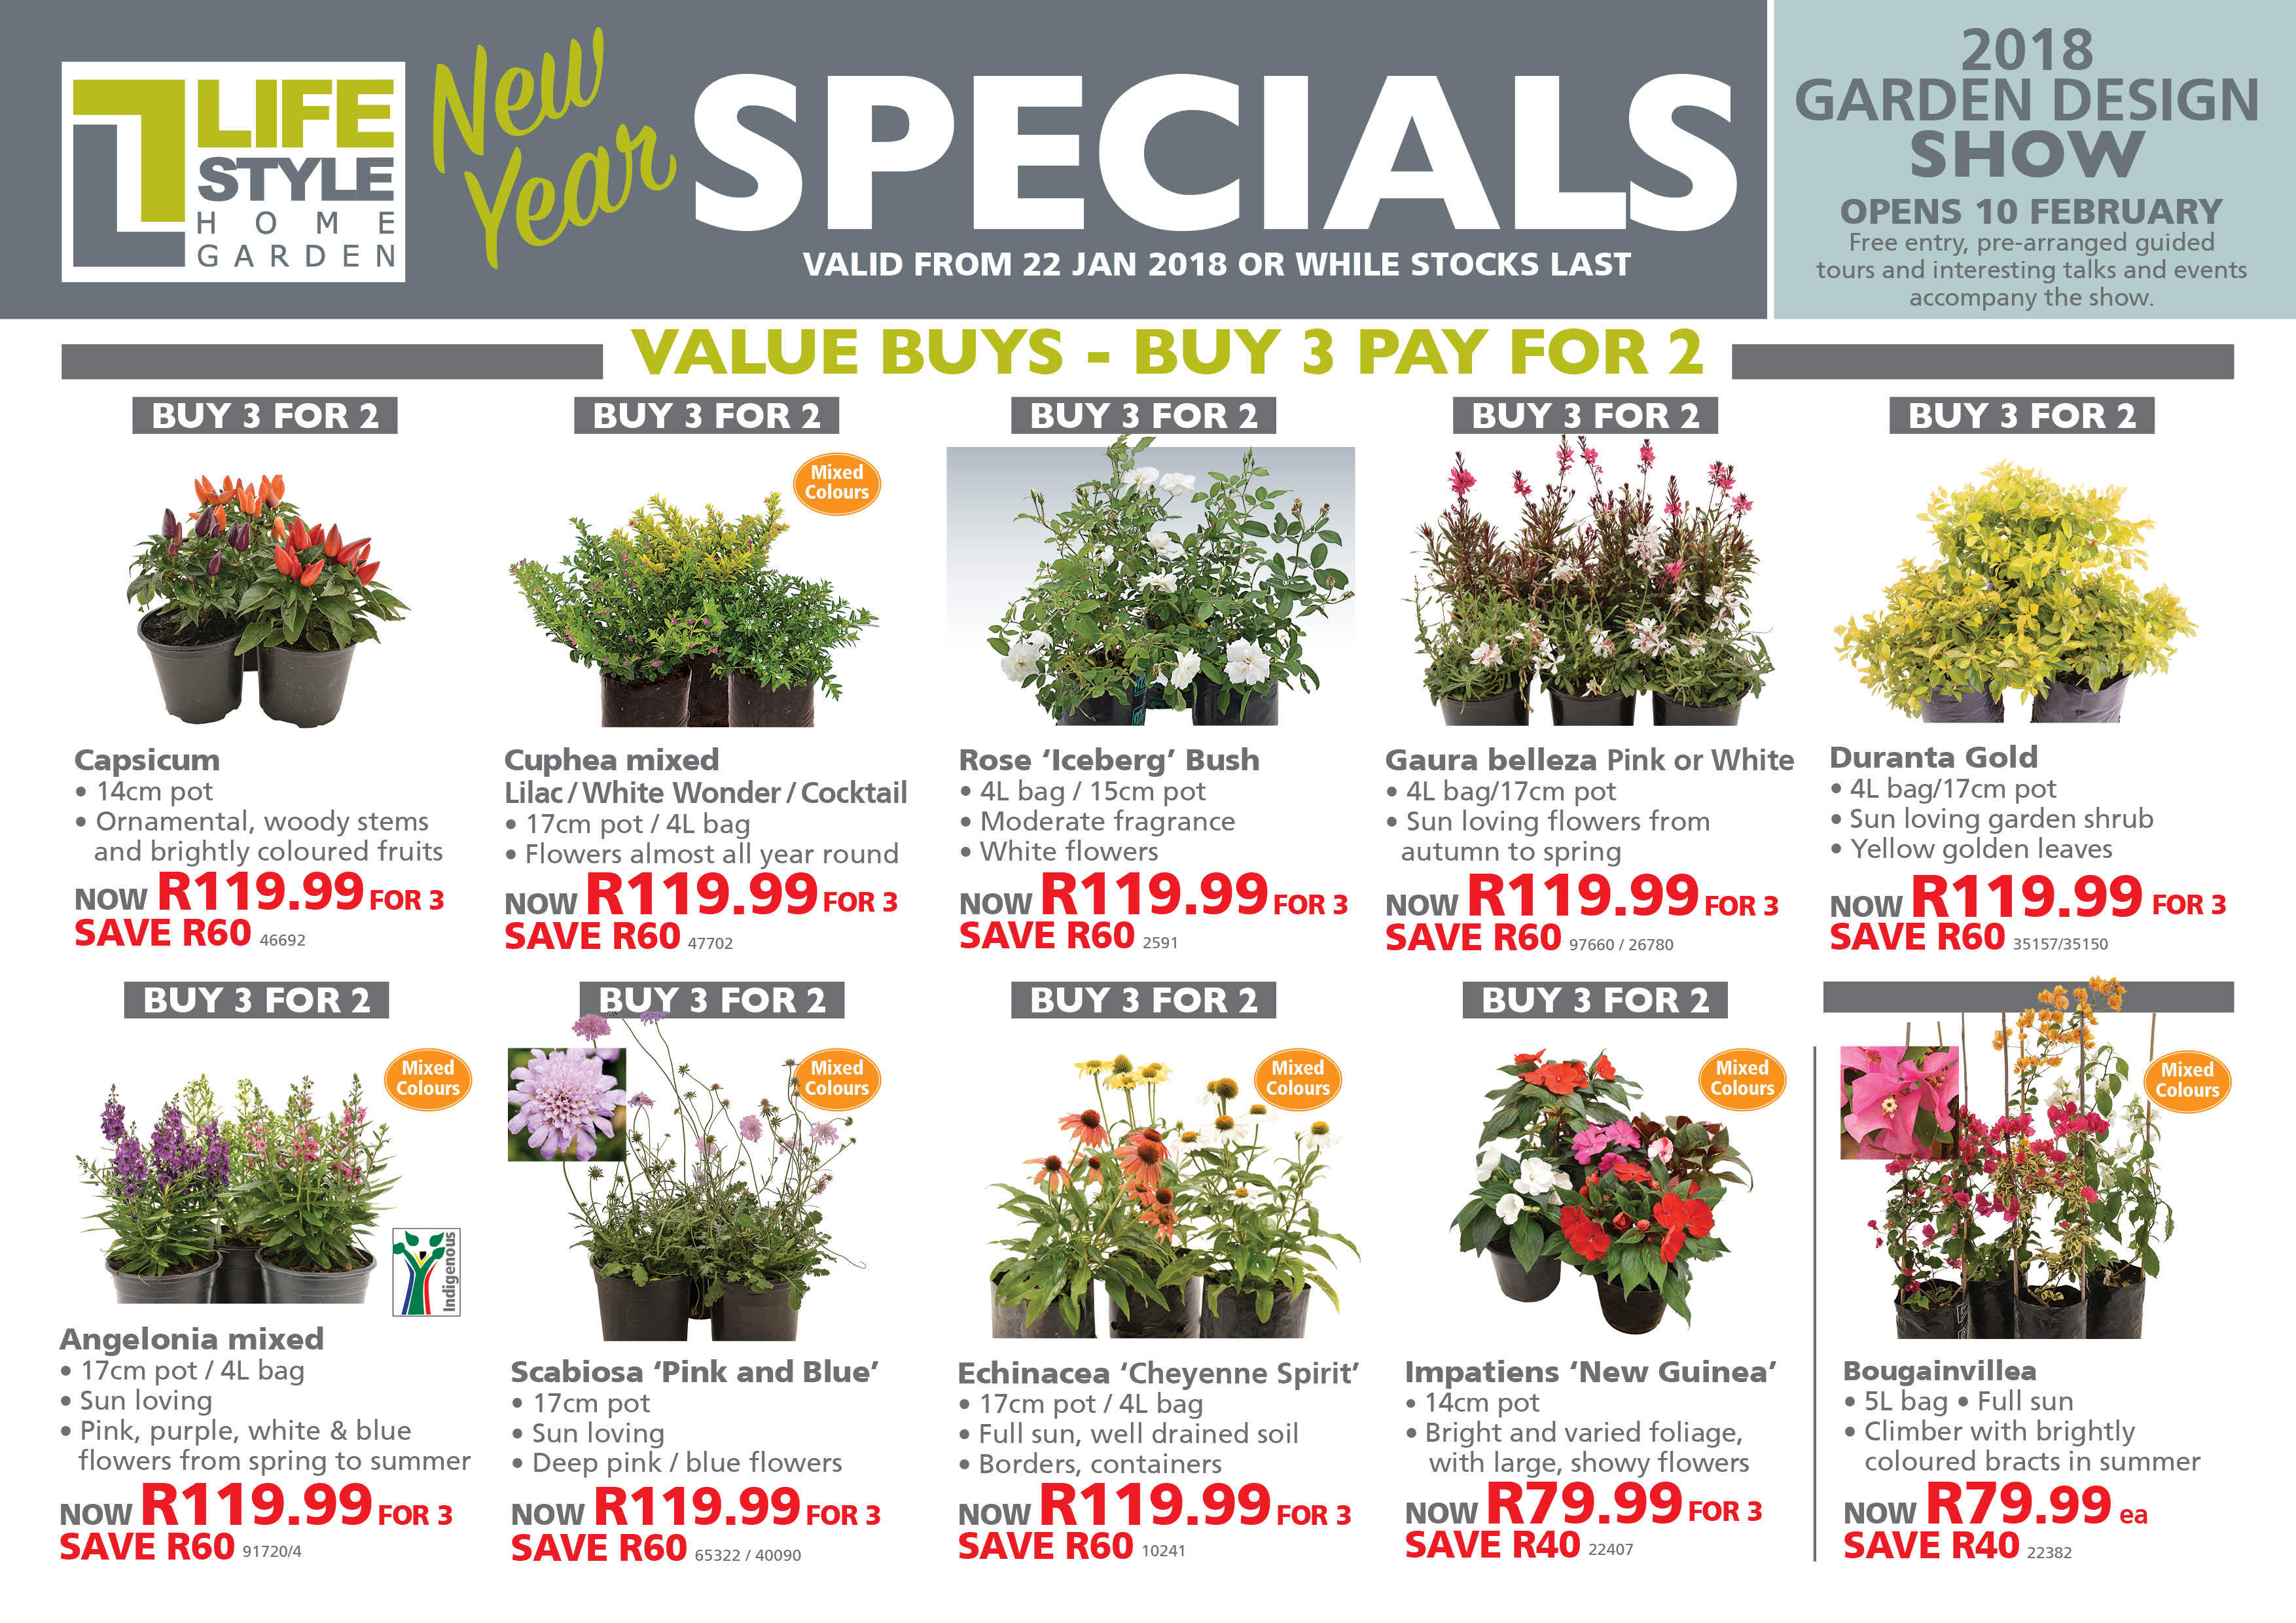 Gardening Specials Lifestyle Home Garden Nursery and Plant Shop